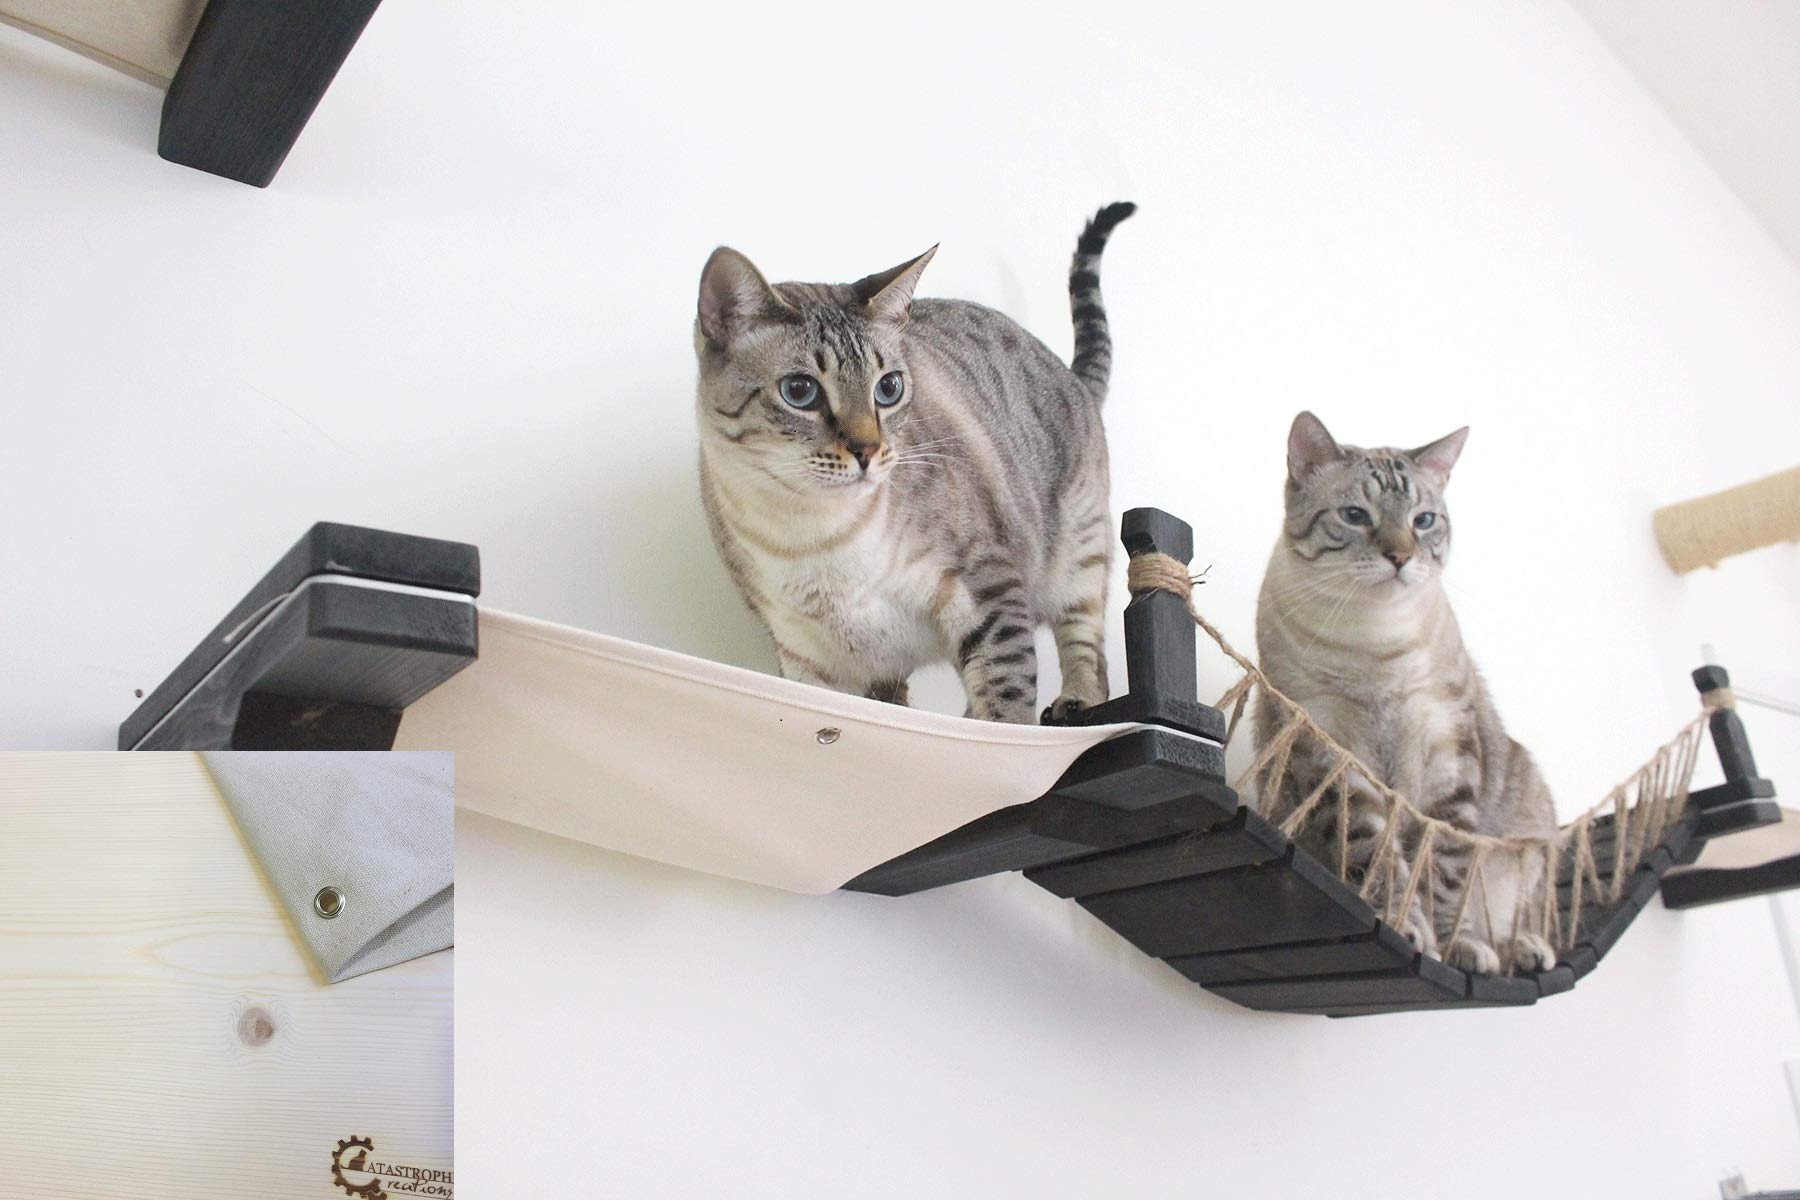 CatastrophiCreations The Cat Mod - Wall-Mounted Cat Bridge with Fabric Lounger for Cats by CatastrophiCreations